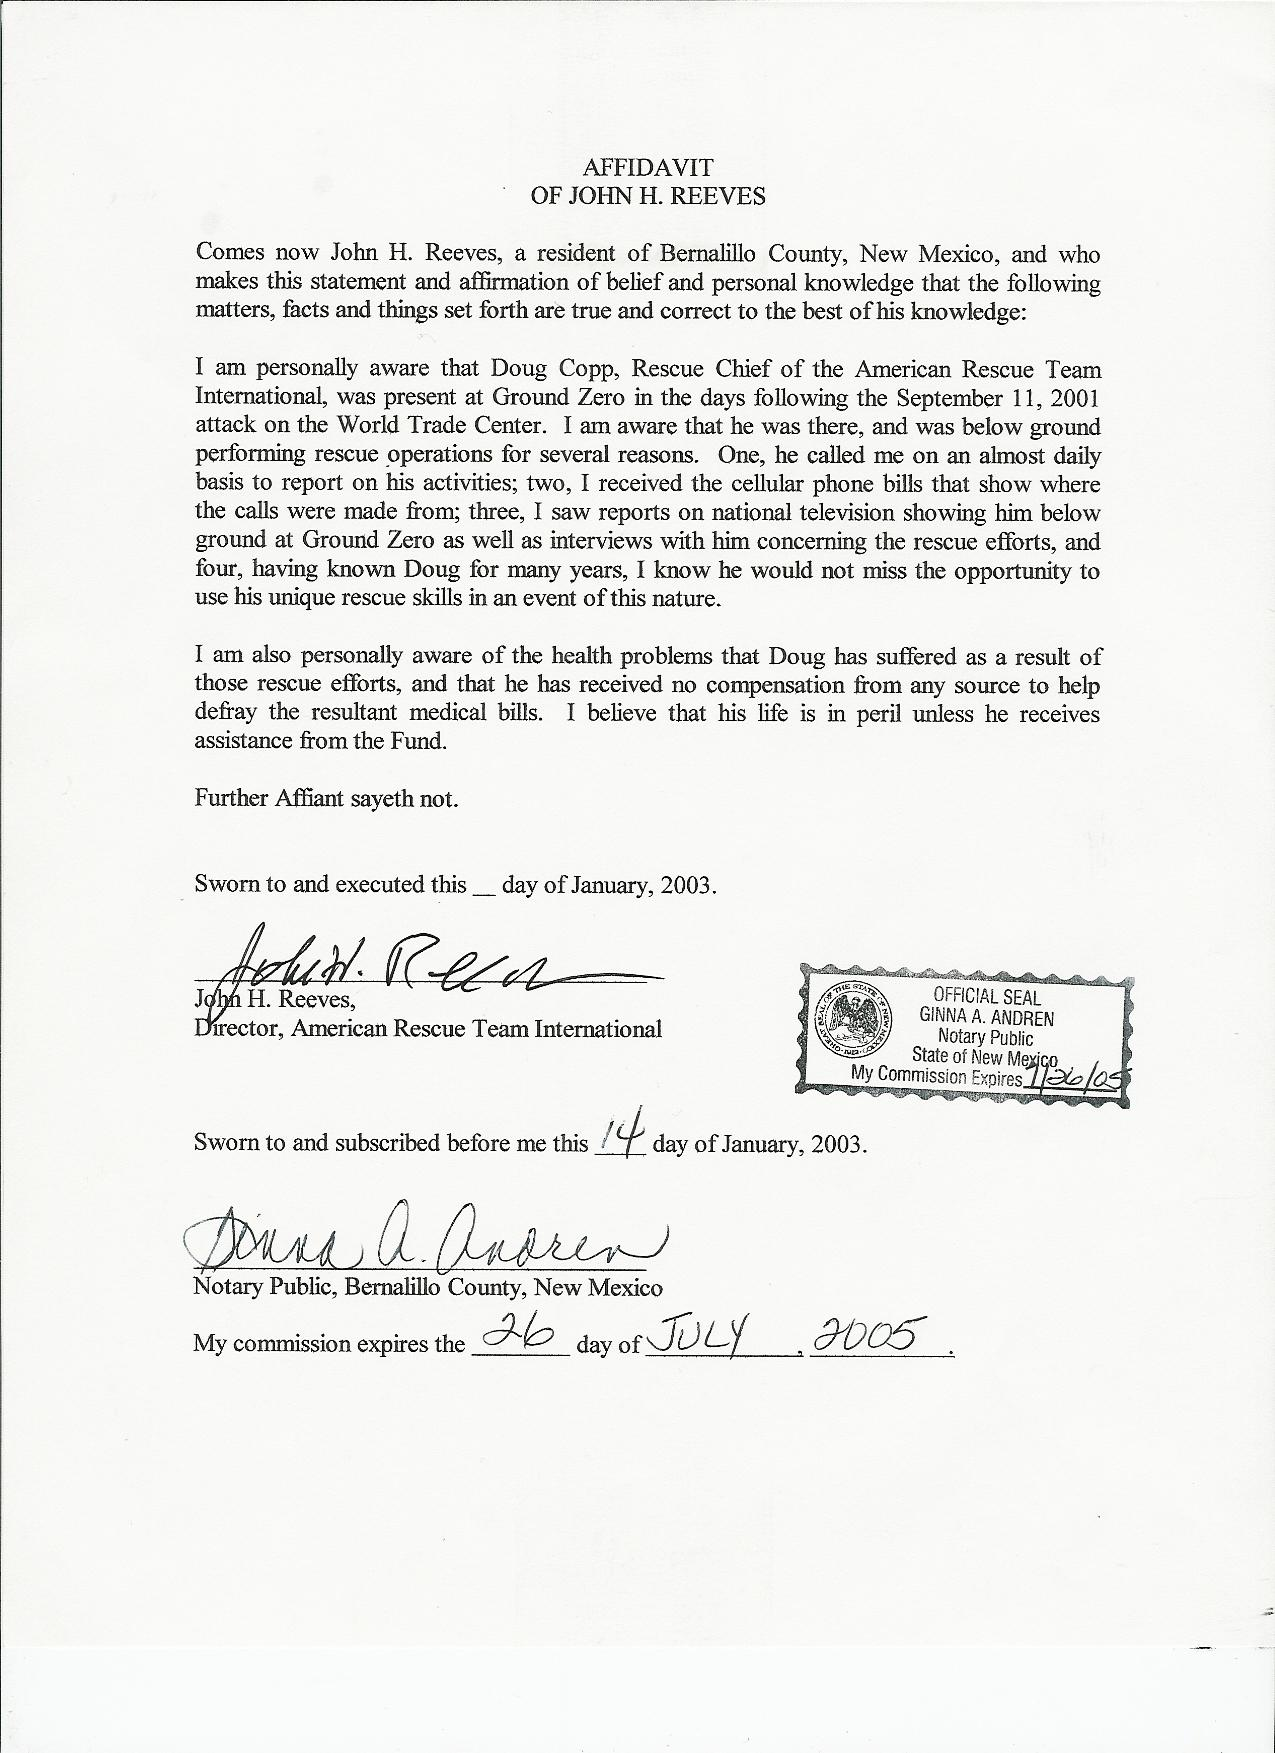 Click Here To See The Original Document